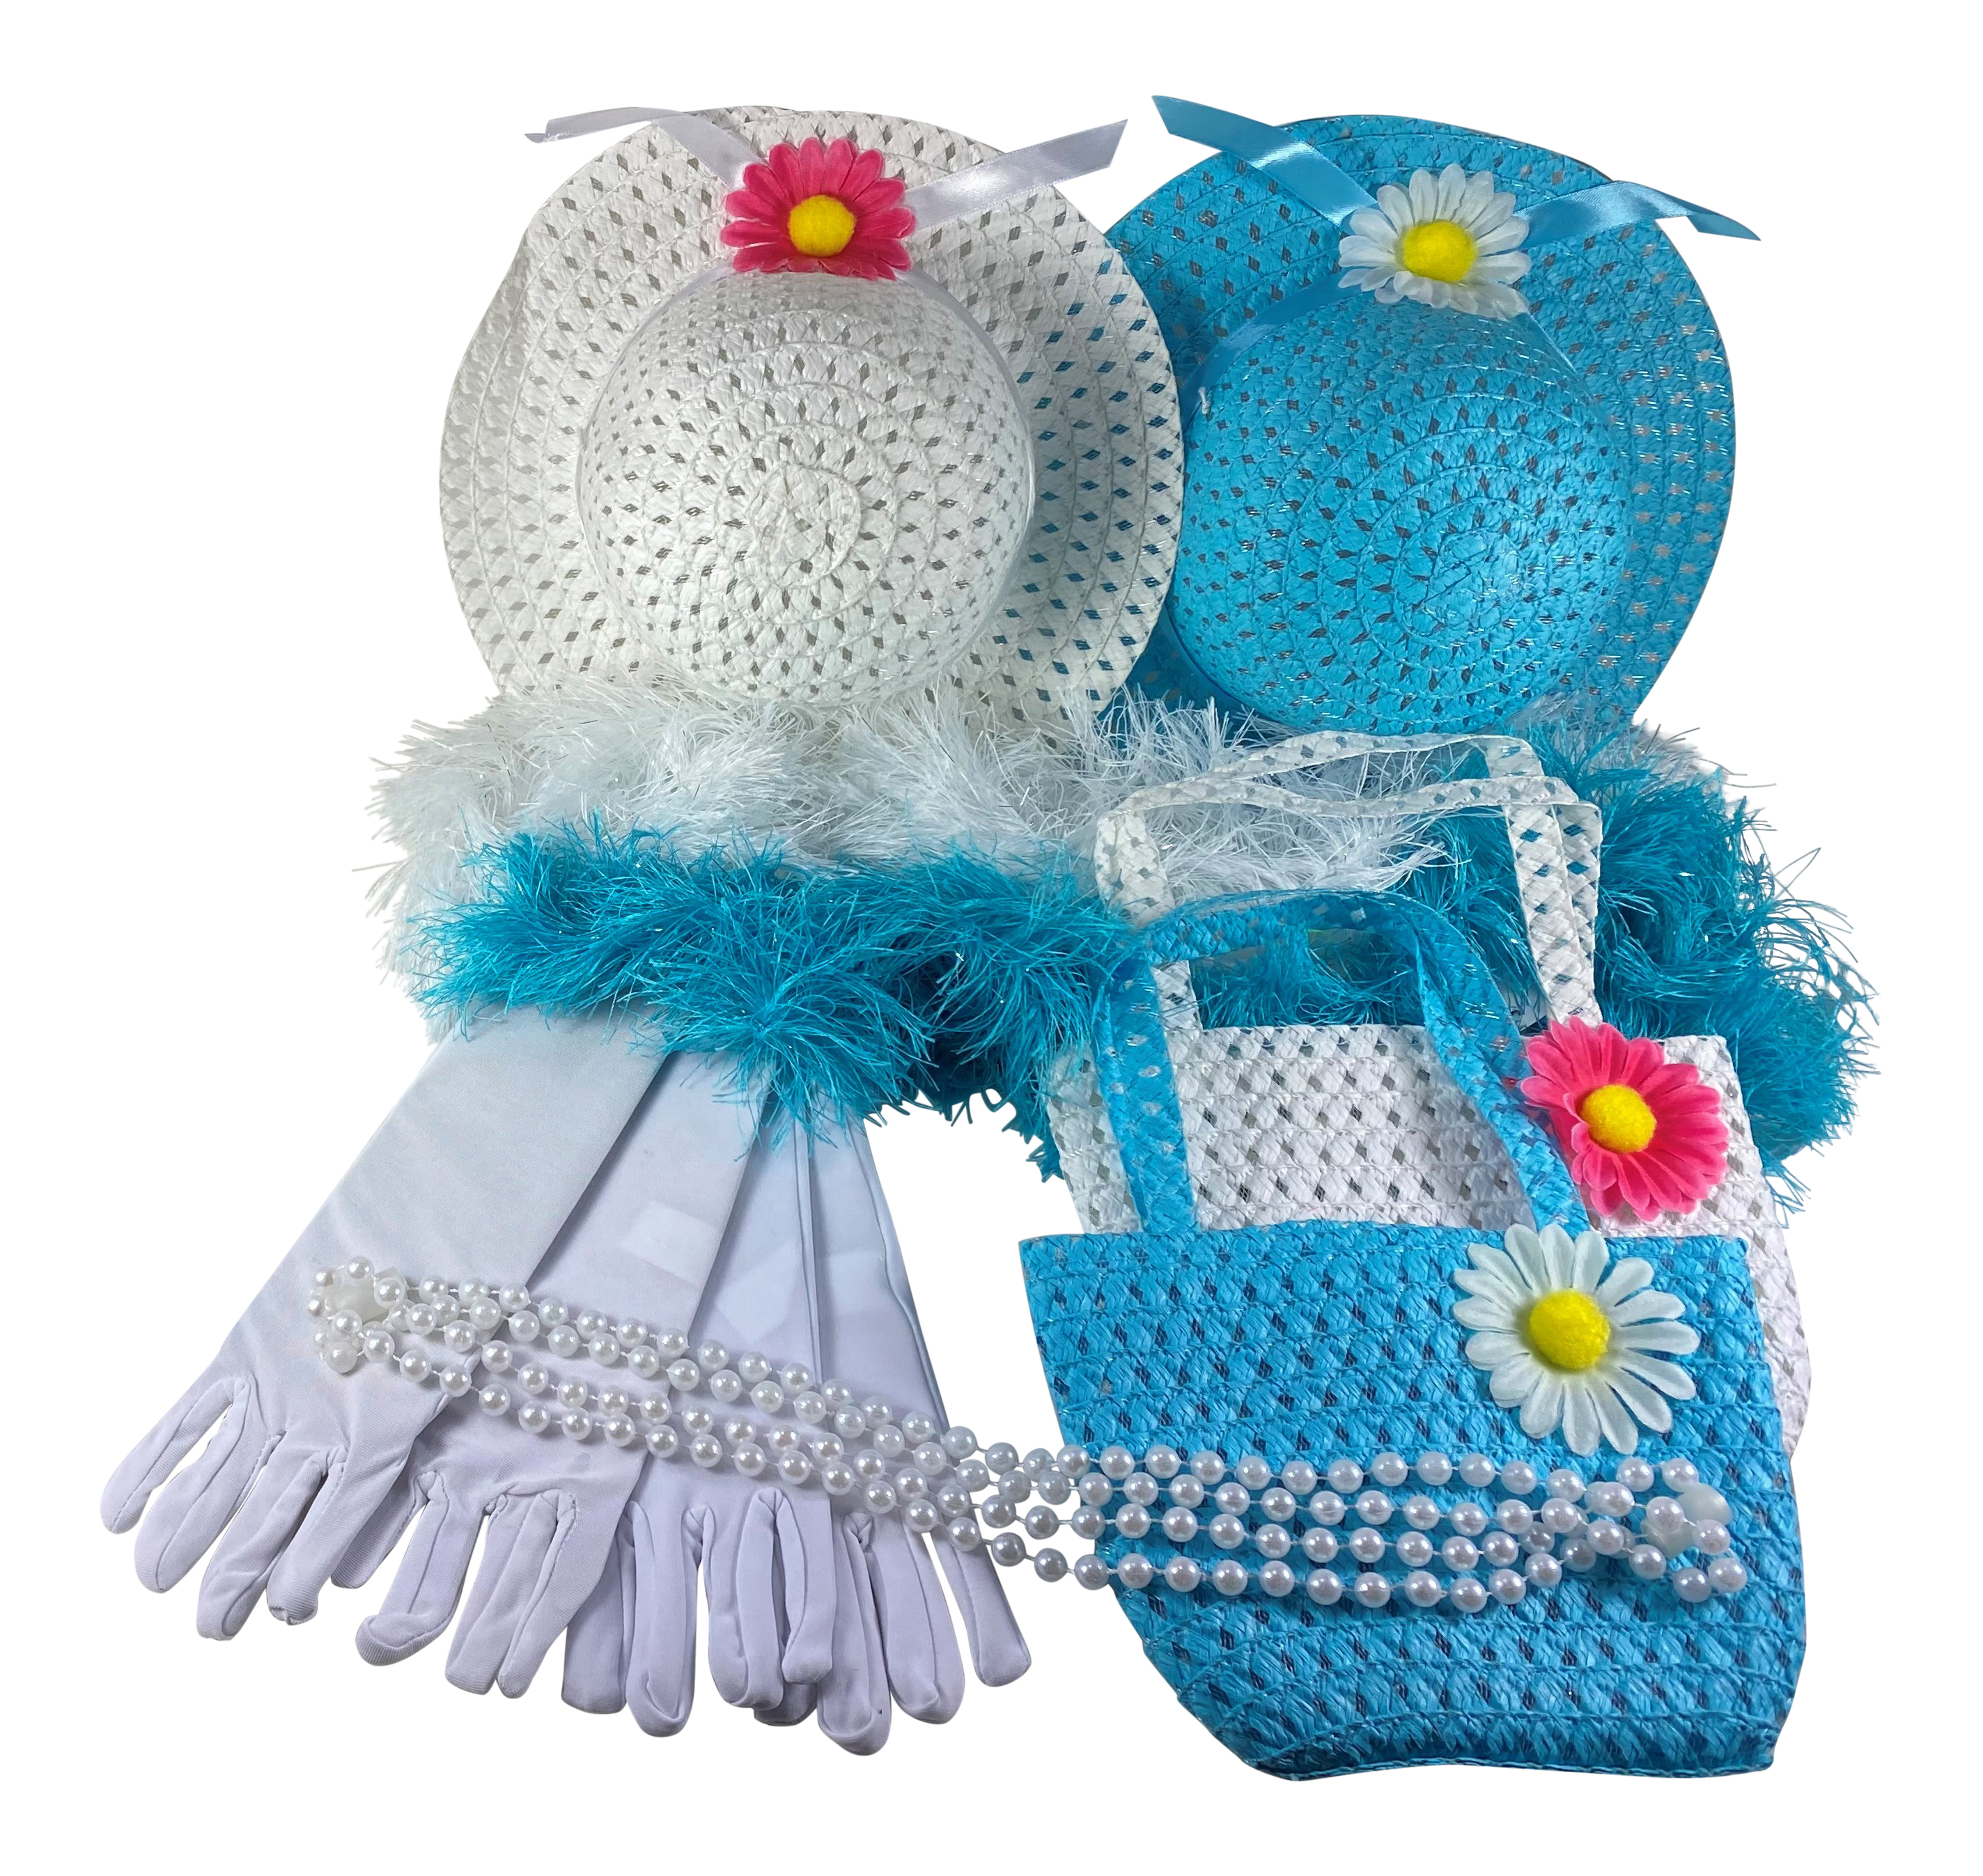 Girls Tea Party Dress Up Set Blue & White Hats Purses Boas Gloves Necklaces